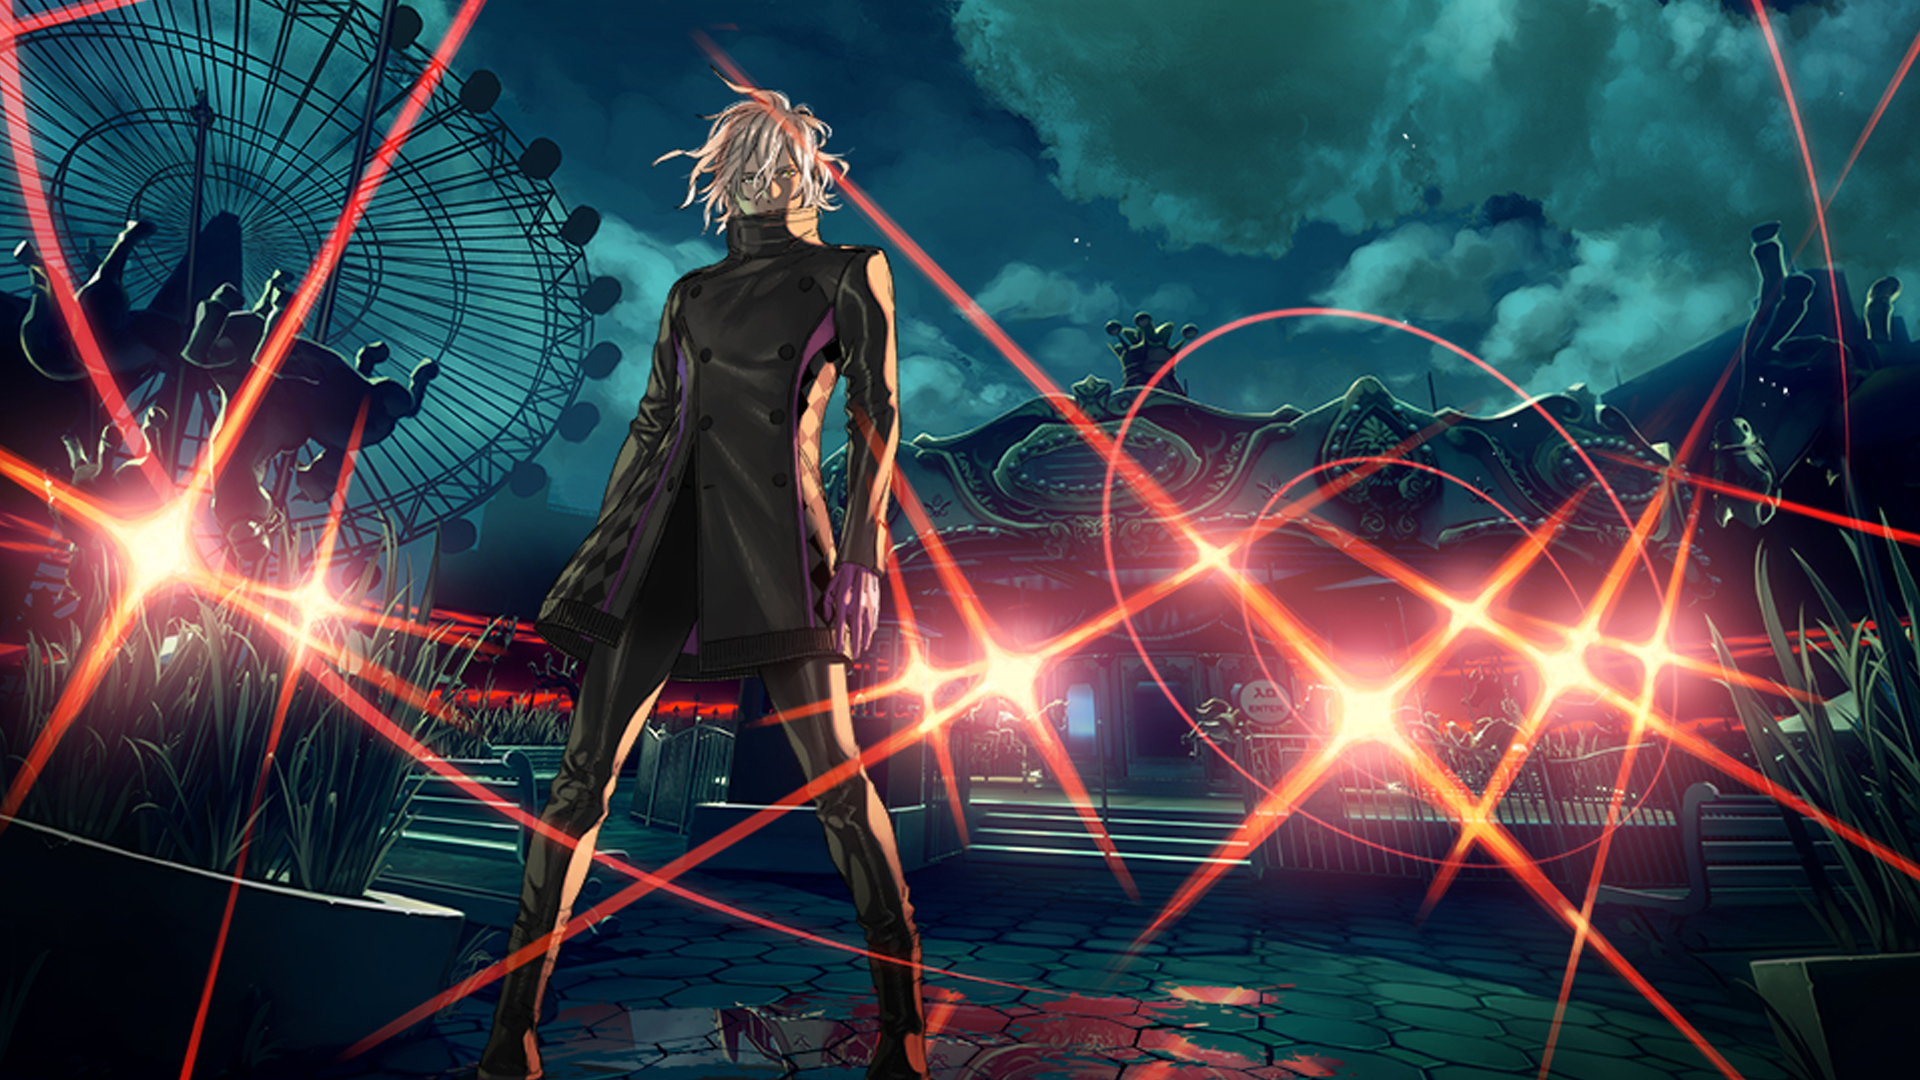 AI: The Somnium Files PS4 vs Nintendo Switch – What to Buy